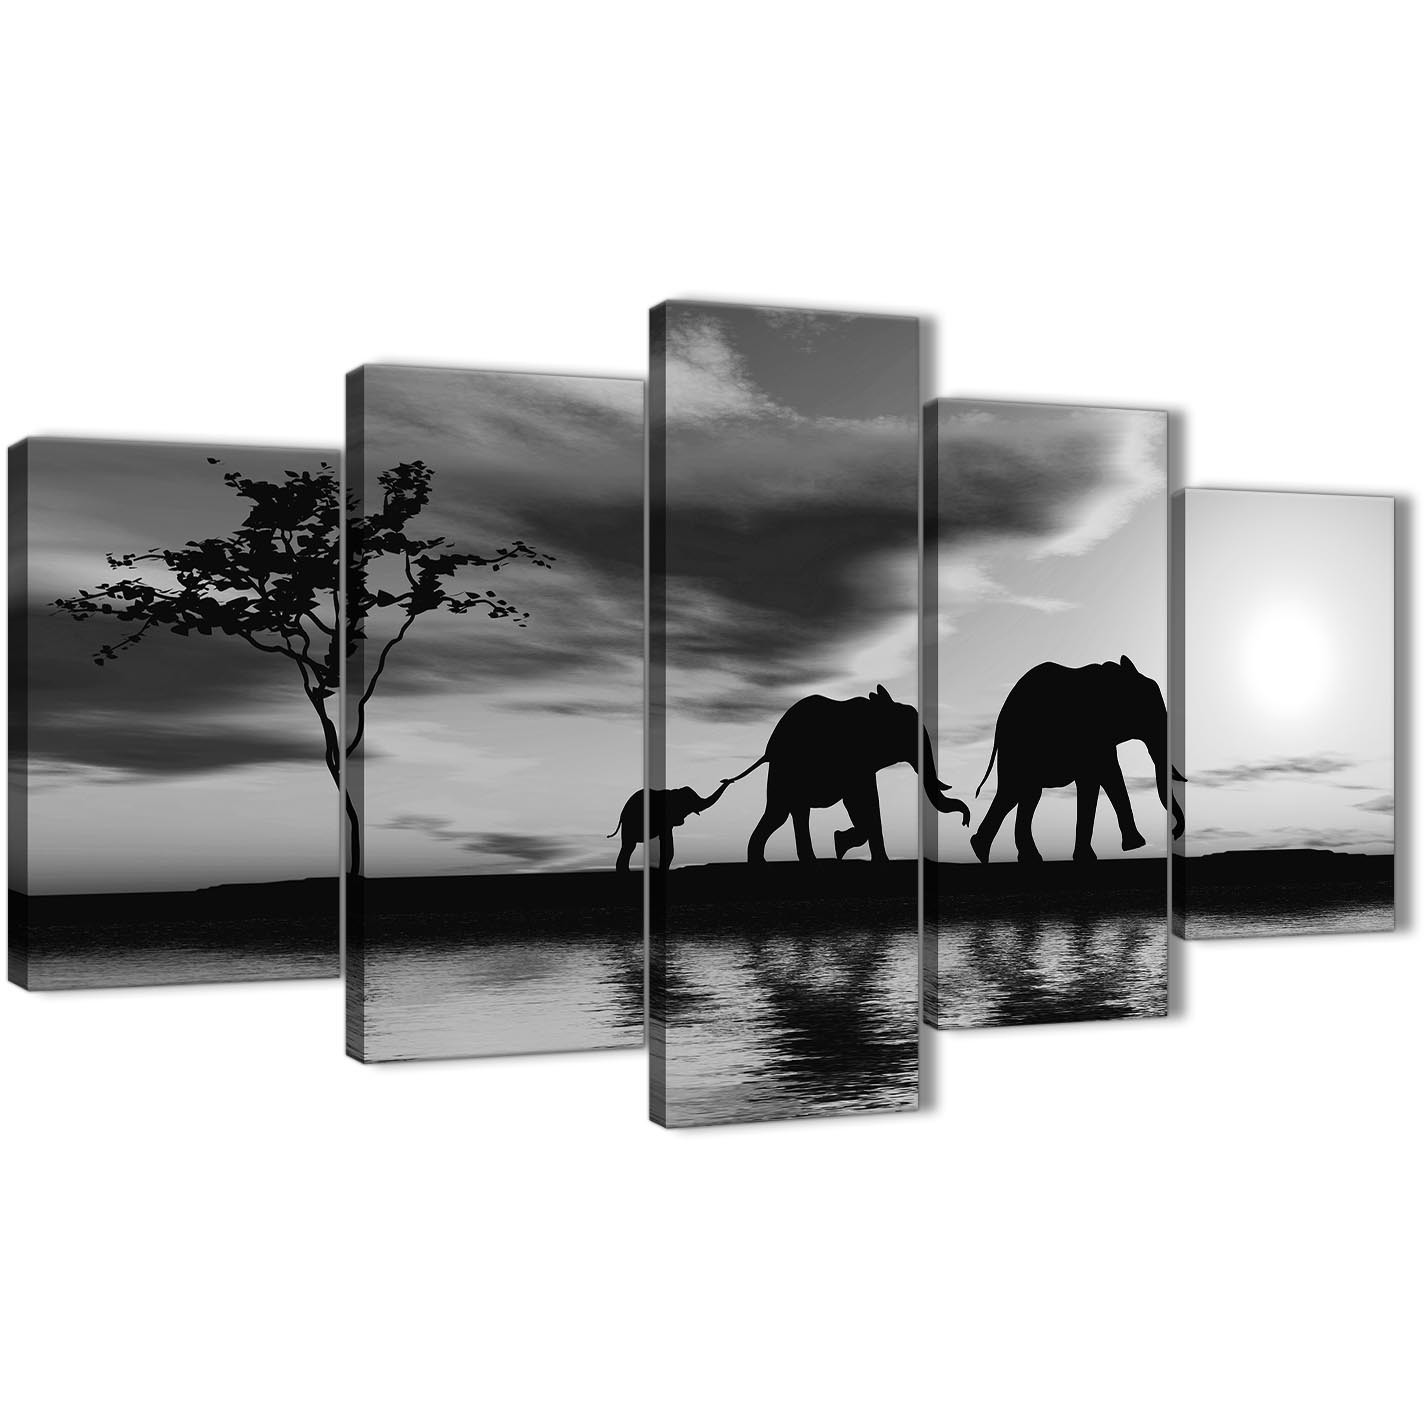 Oversized extra large black white african sunset elephants canvas wall art print multi 5 part 160cm display gallery item 1